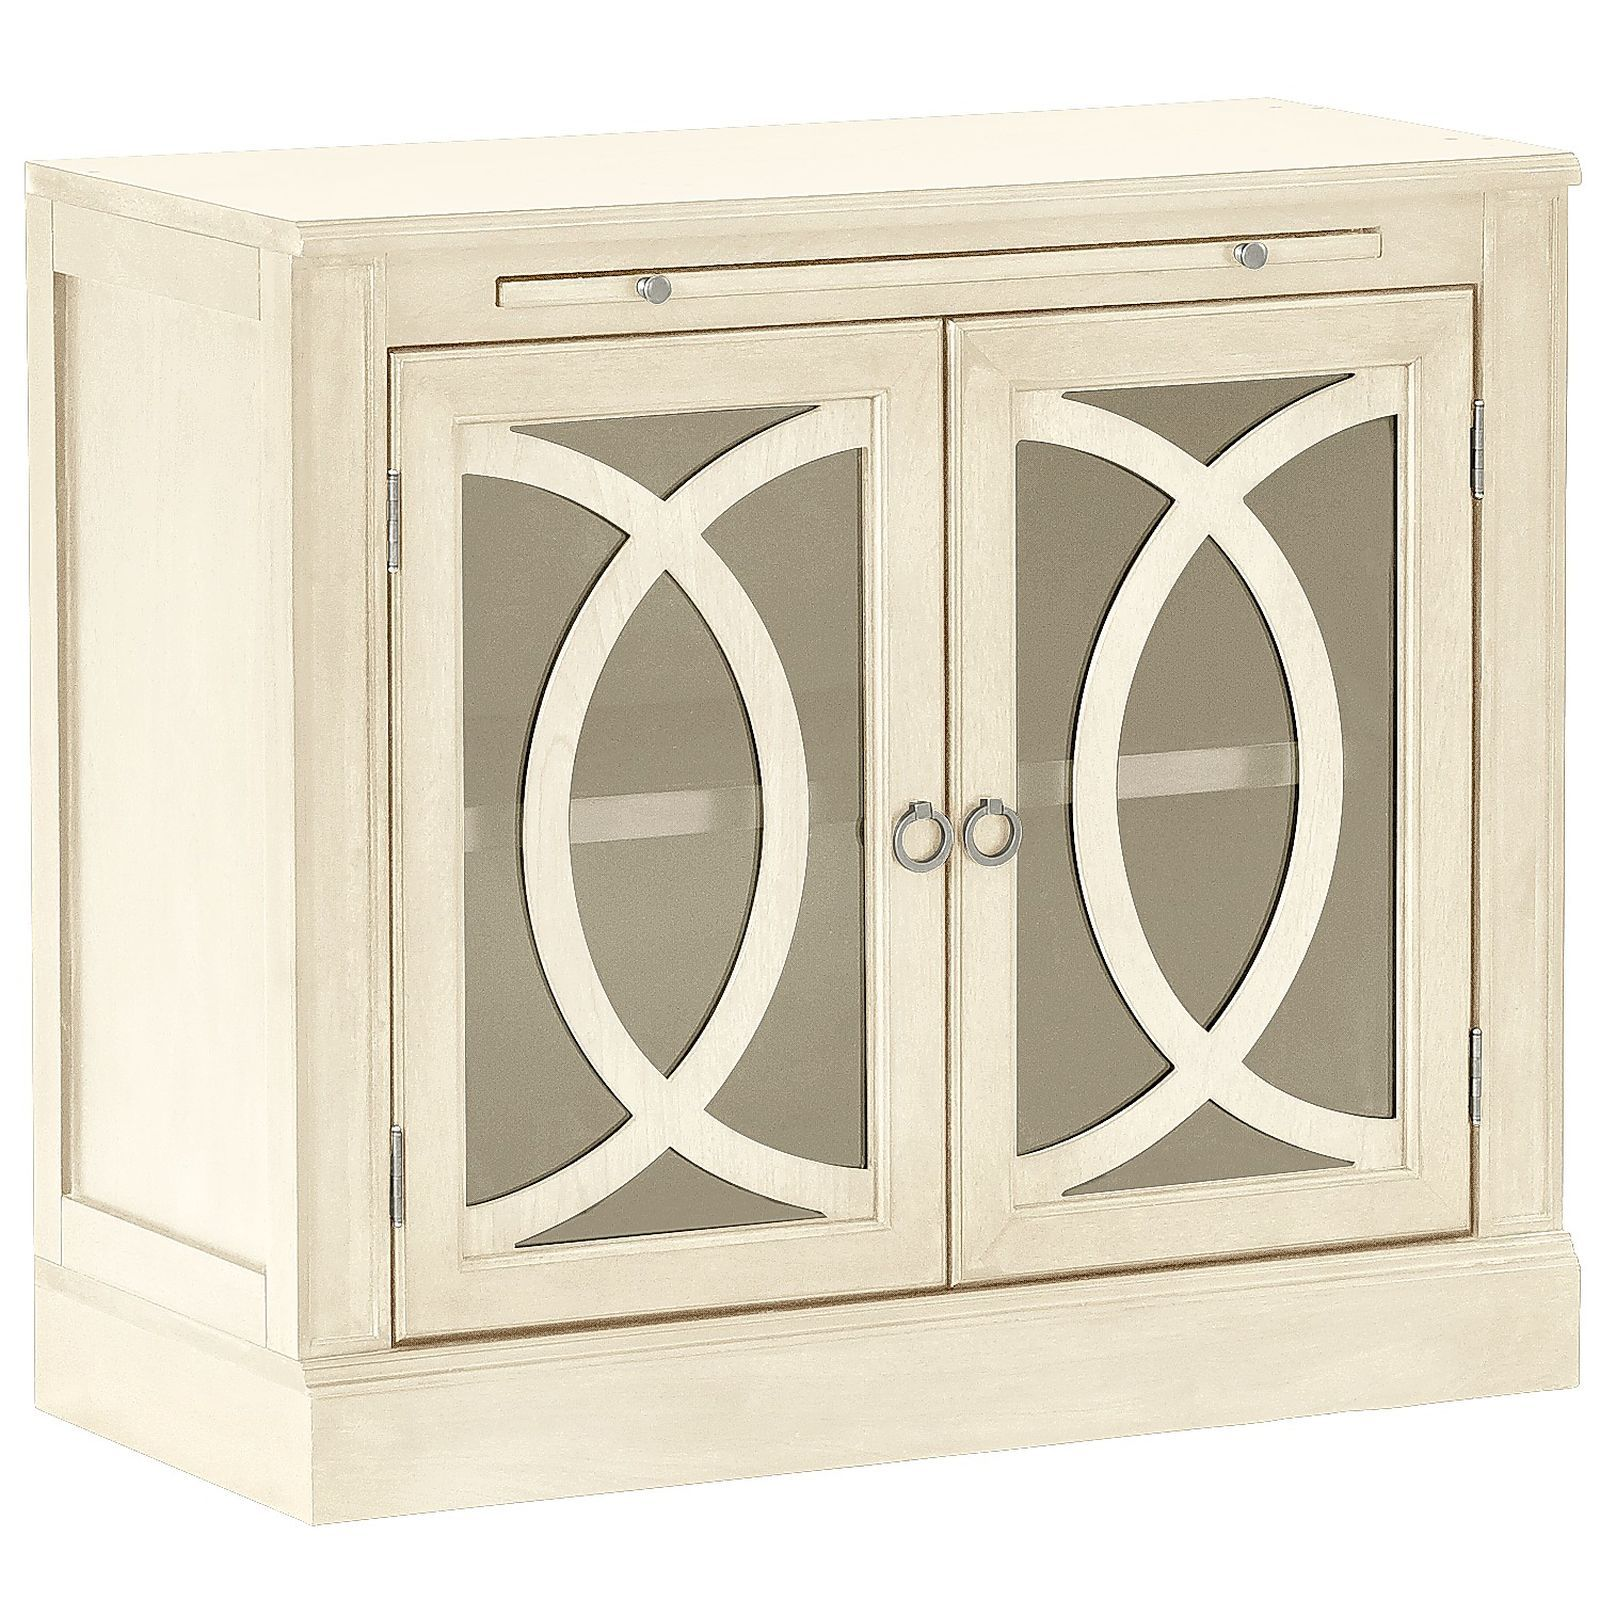 Ordinaire Cabinets U0026 Chests: Living Room Furniture. White DoorsWhite WallsAntique ...